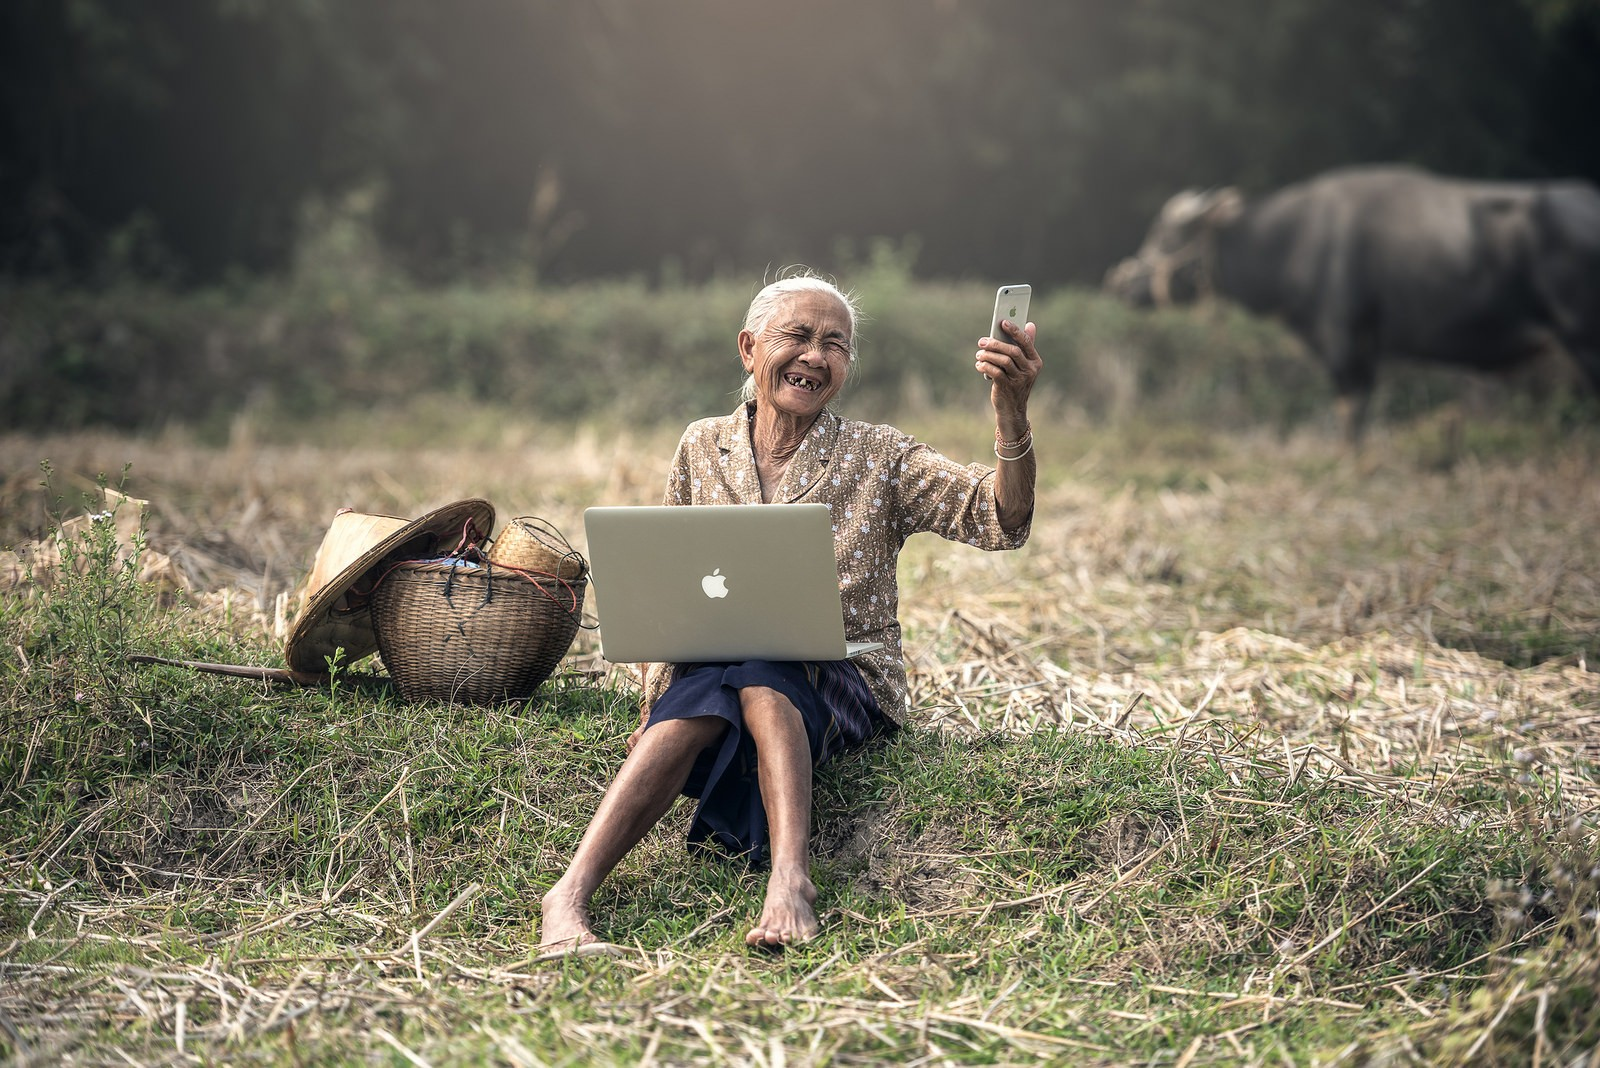 People 1600x1068 technology old people barefoot laptop Asia Apple Computer Apple Inc. MacBook iPhone field depth of field